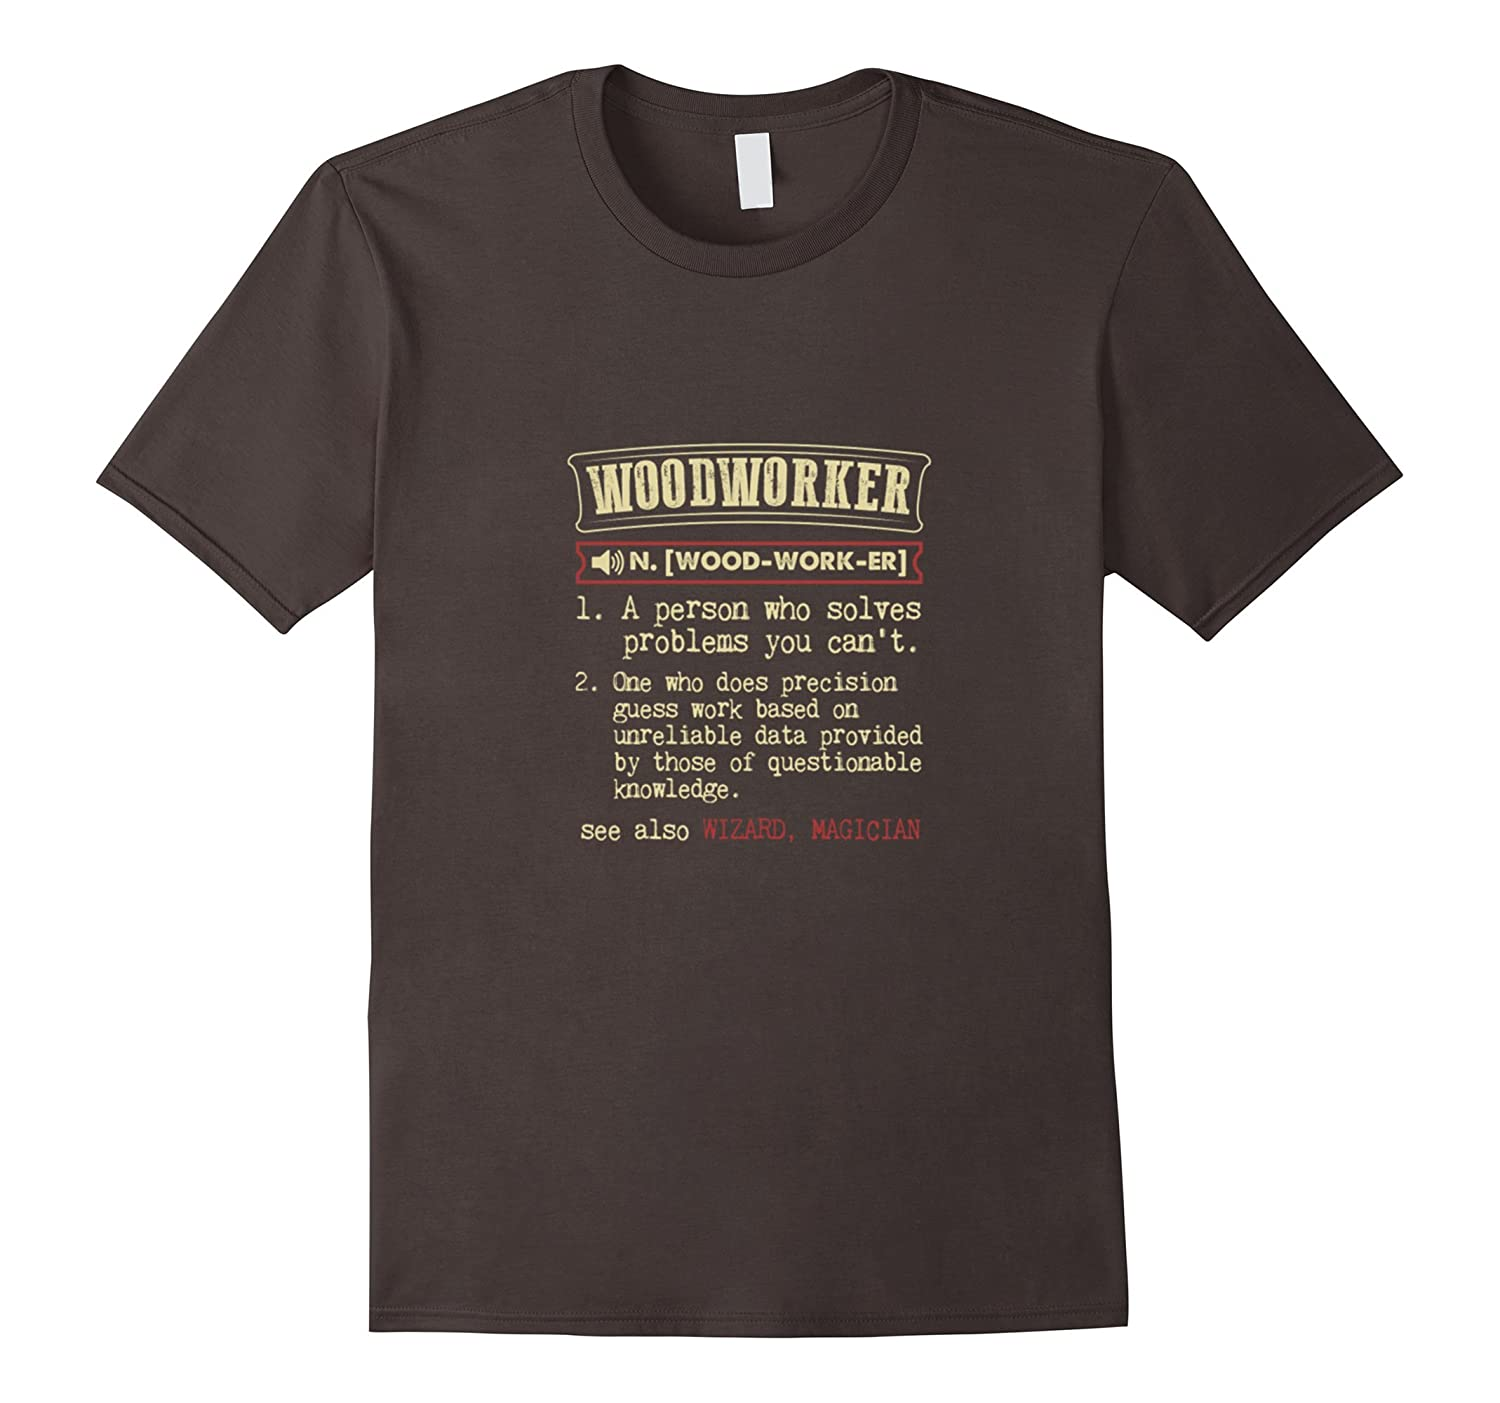 ... Woodworker - Funny Woodworking T-shirt ...